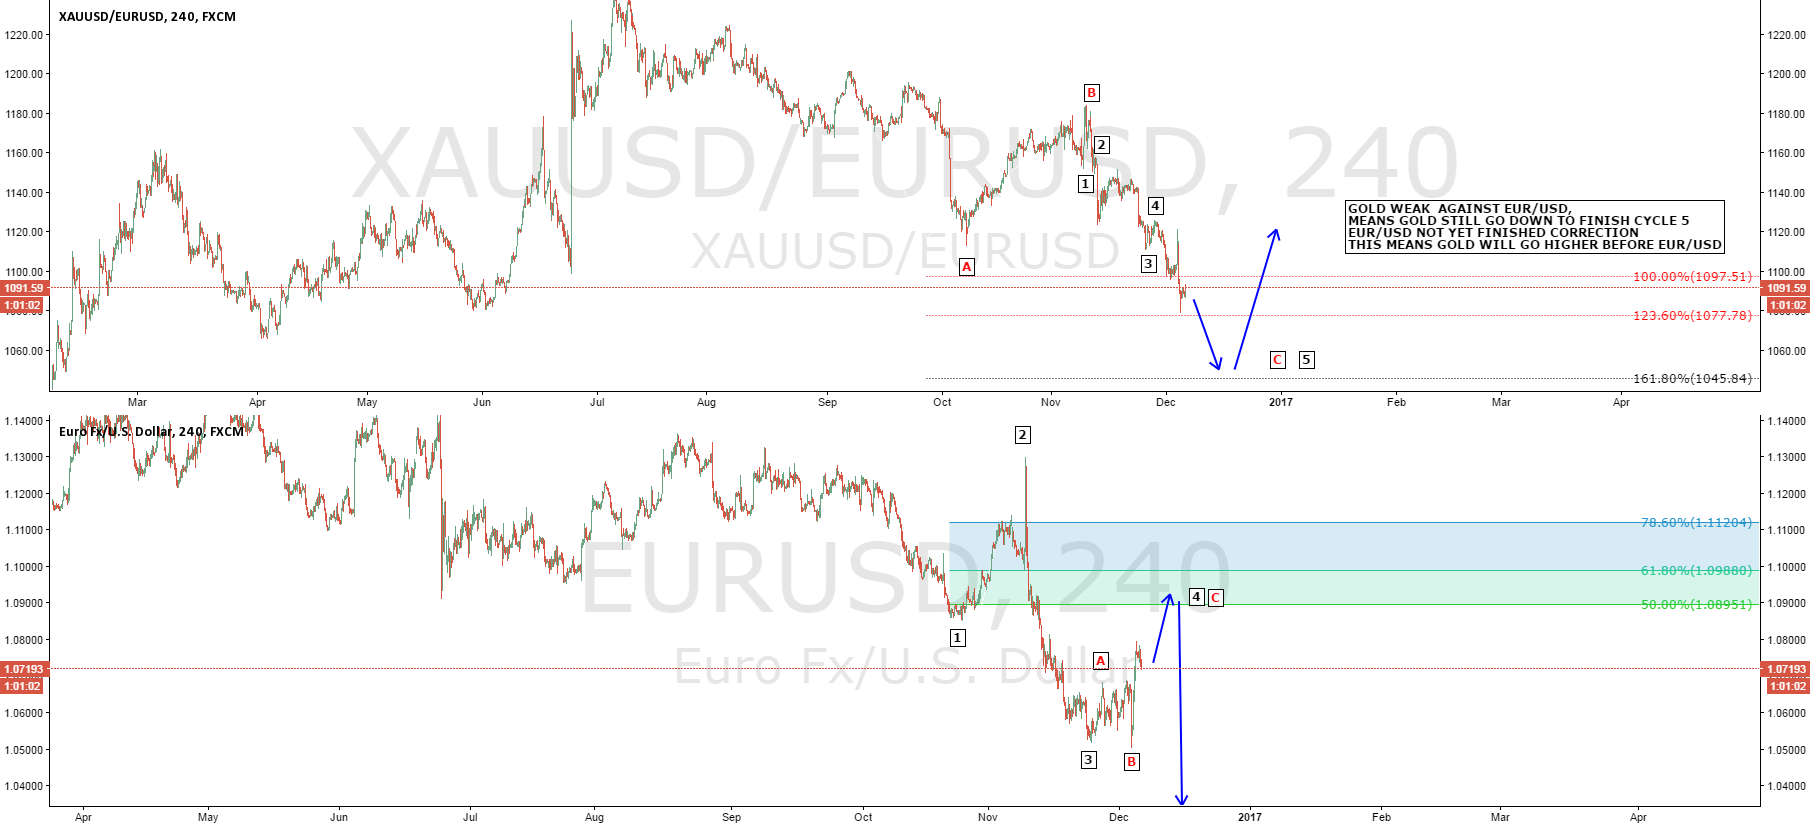 GOLD WEAK AGAINST EUR/USD,BUT GOLD WILL GO HIGHER BEFORE EUR/USD